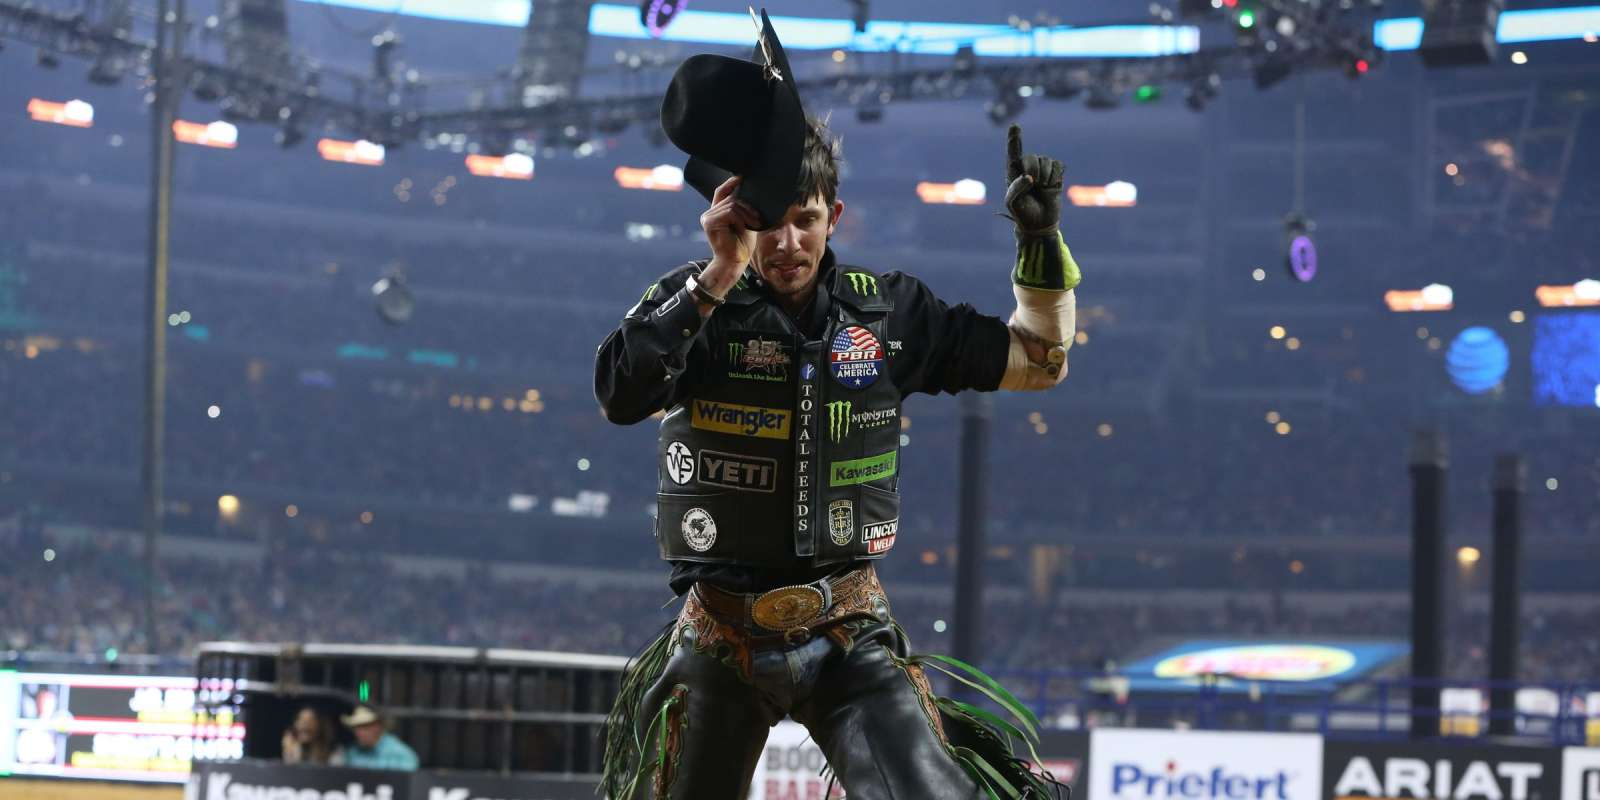 JB Mauney rides Dakota Rodeo/Chad Berger/Clay Struve's Shelly's Gangster for 87.75 during the Arlington Last Cowboy Standing PBR 25th Anniversary Unleash the Beast